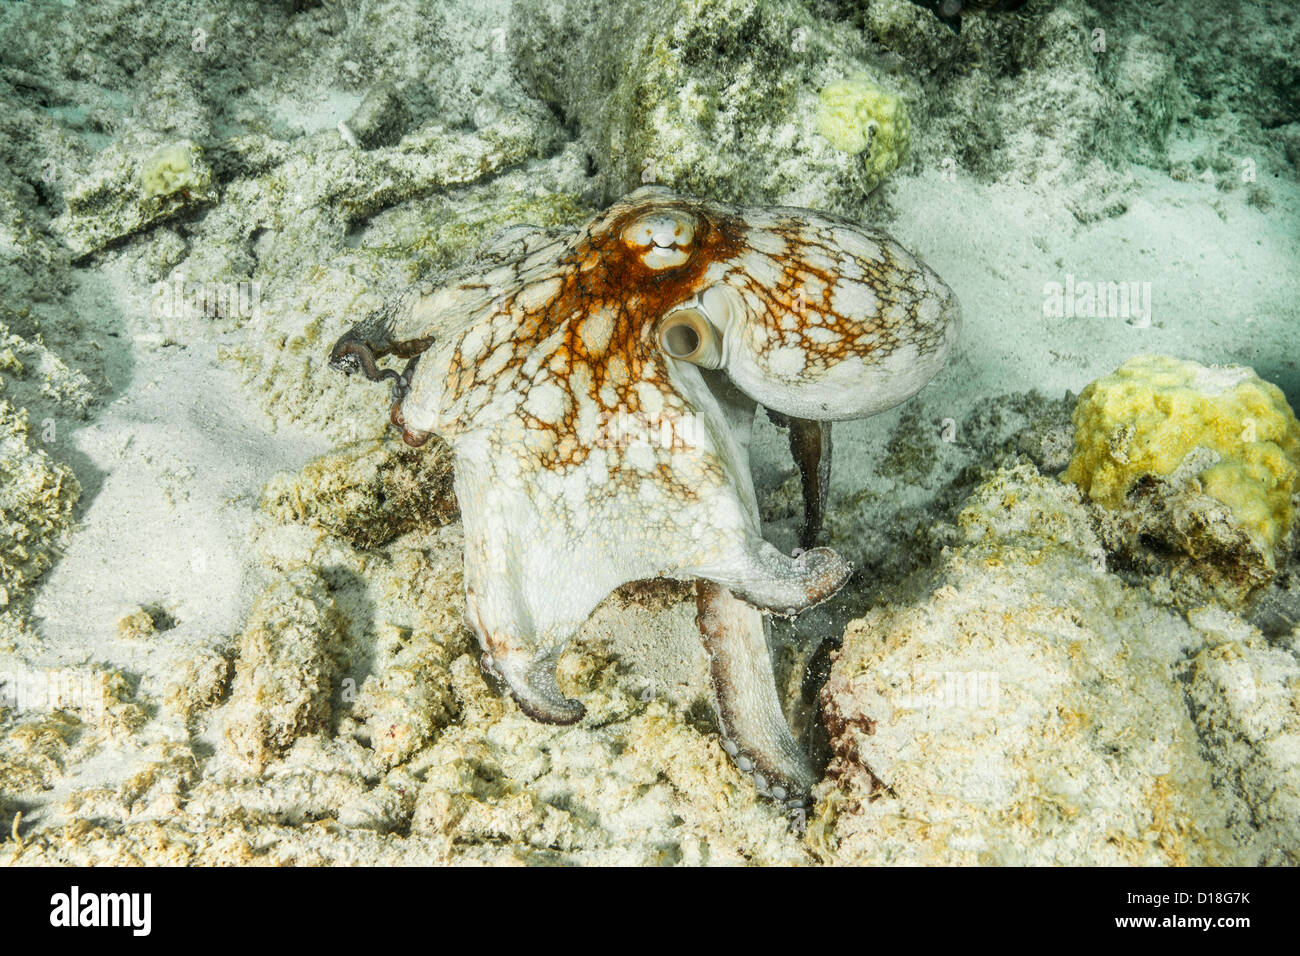 Octopus swimming at underwater reef - Stock Image